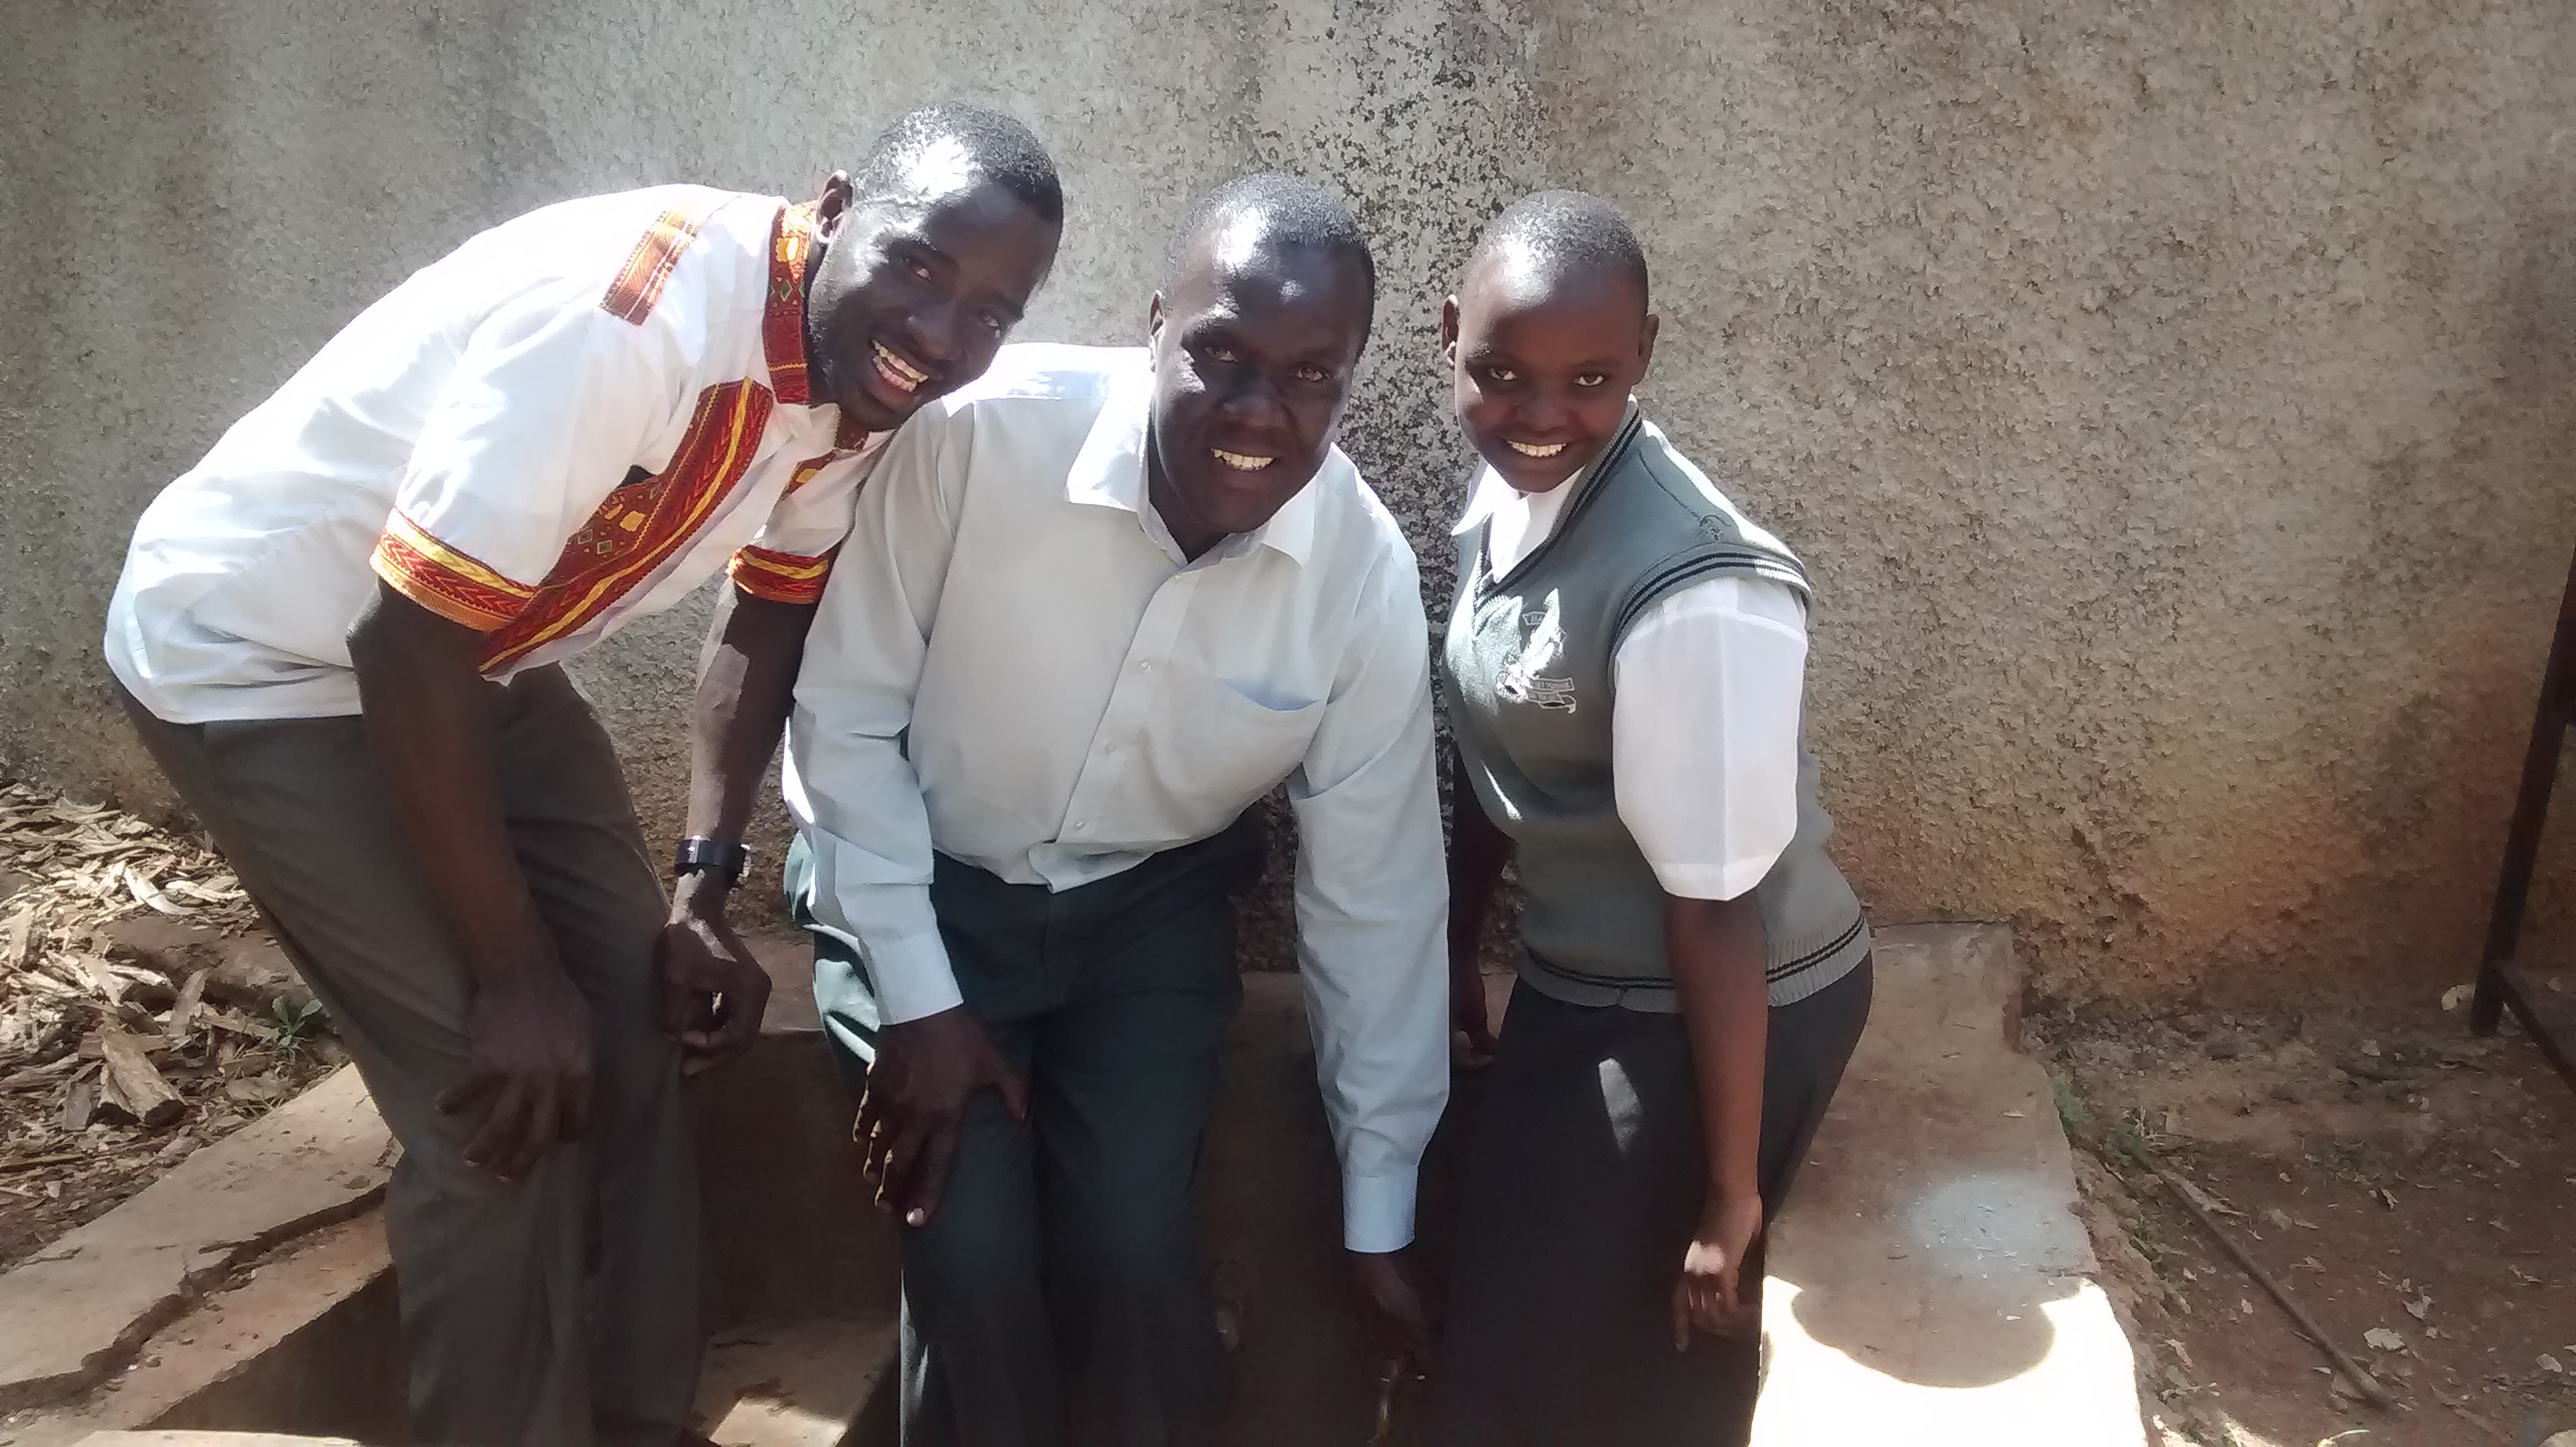 The Water Project : kenya4640-eric-wagaka-poses-with-teacher-and-student-at-the-tank